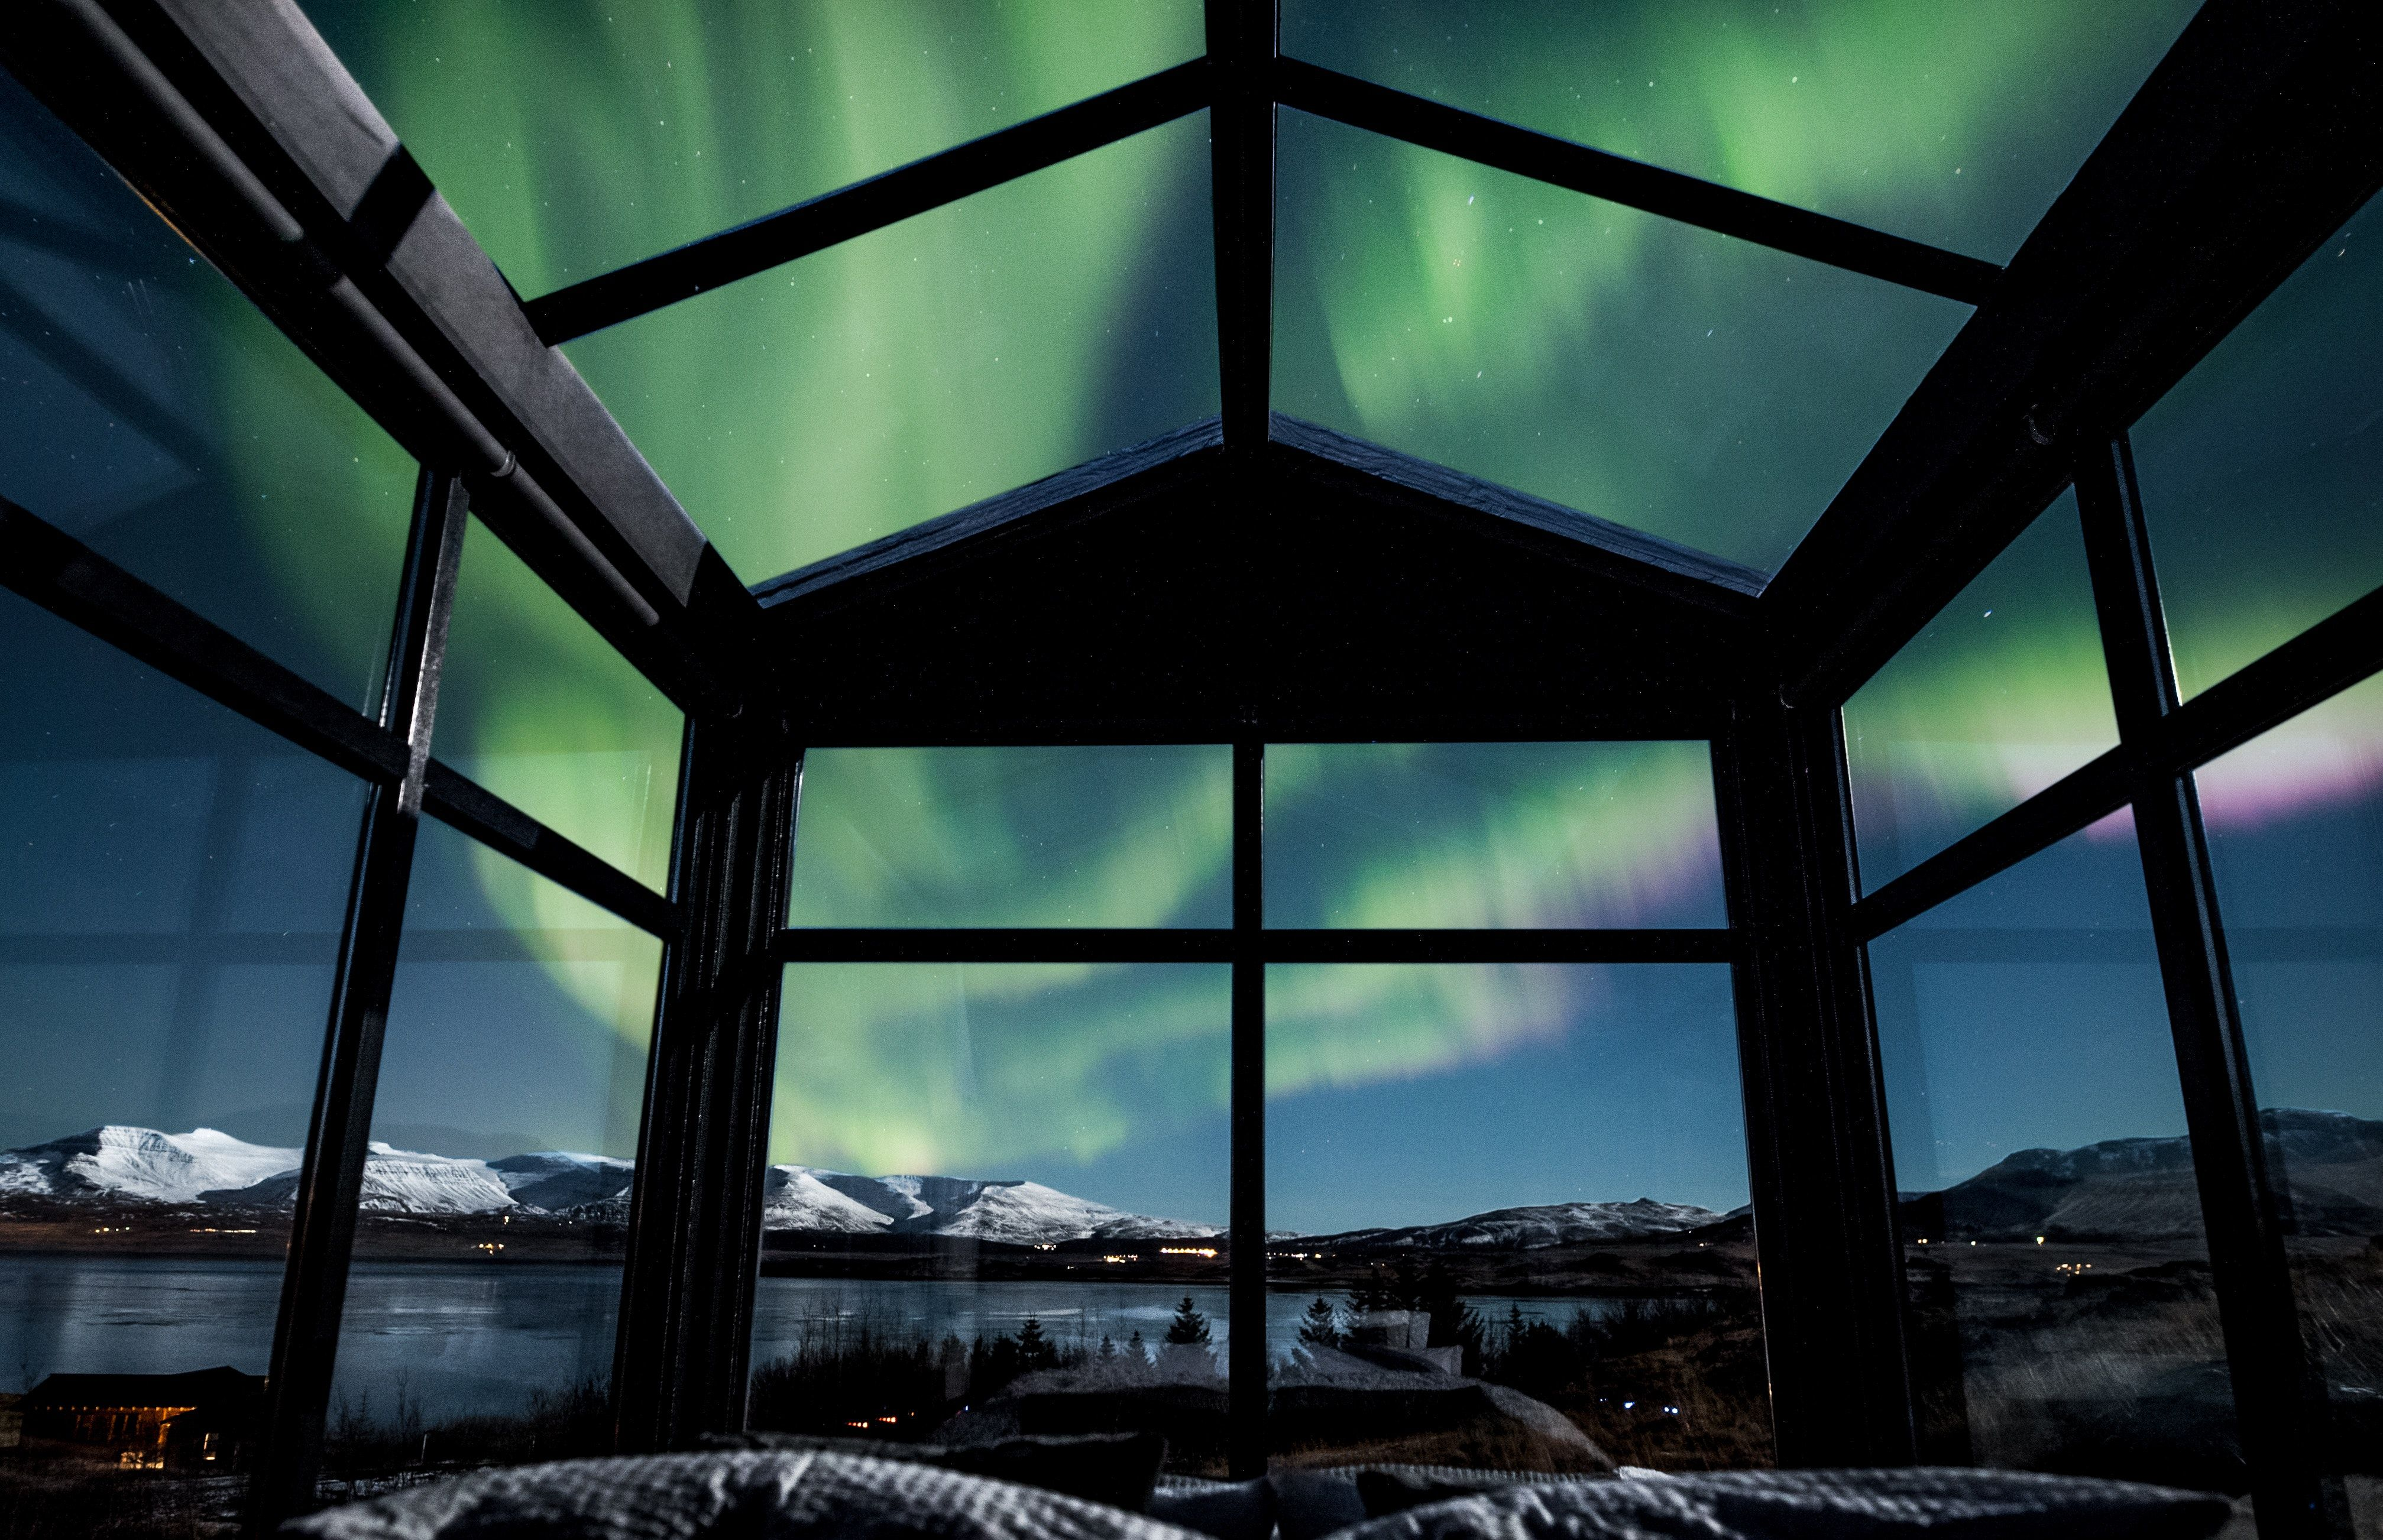 Catch Unobstructed Views Of The Aurora Borealis In This Icelandic Glass Hotel See The Northern Lights Northern Lights Iceland Northern Lights Viewing